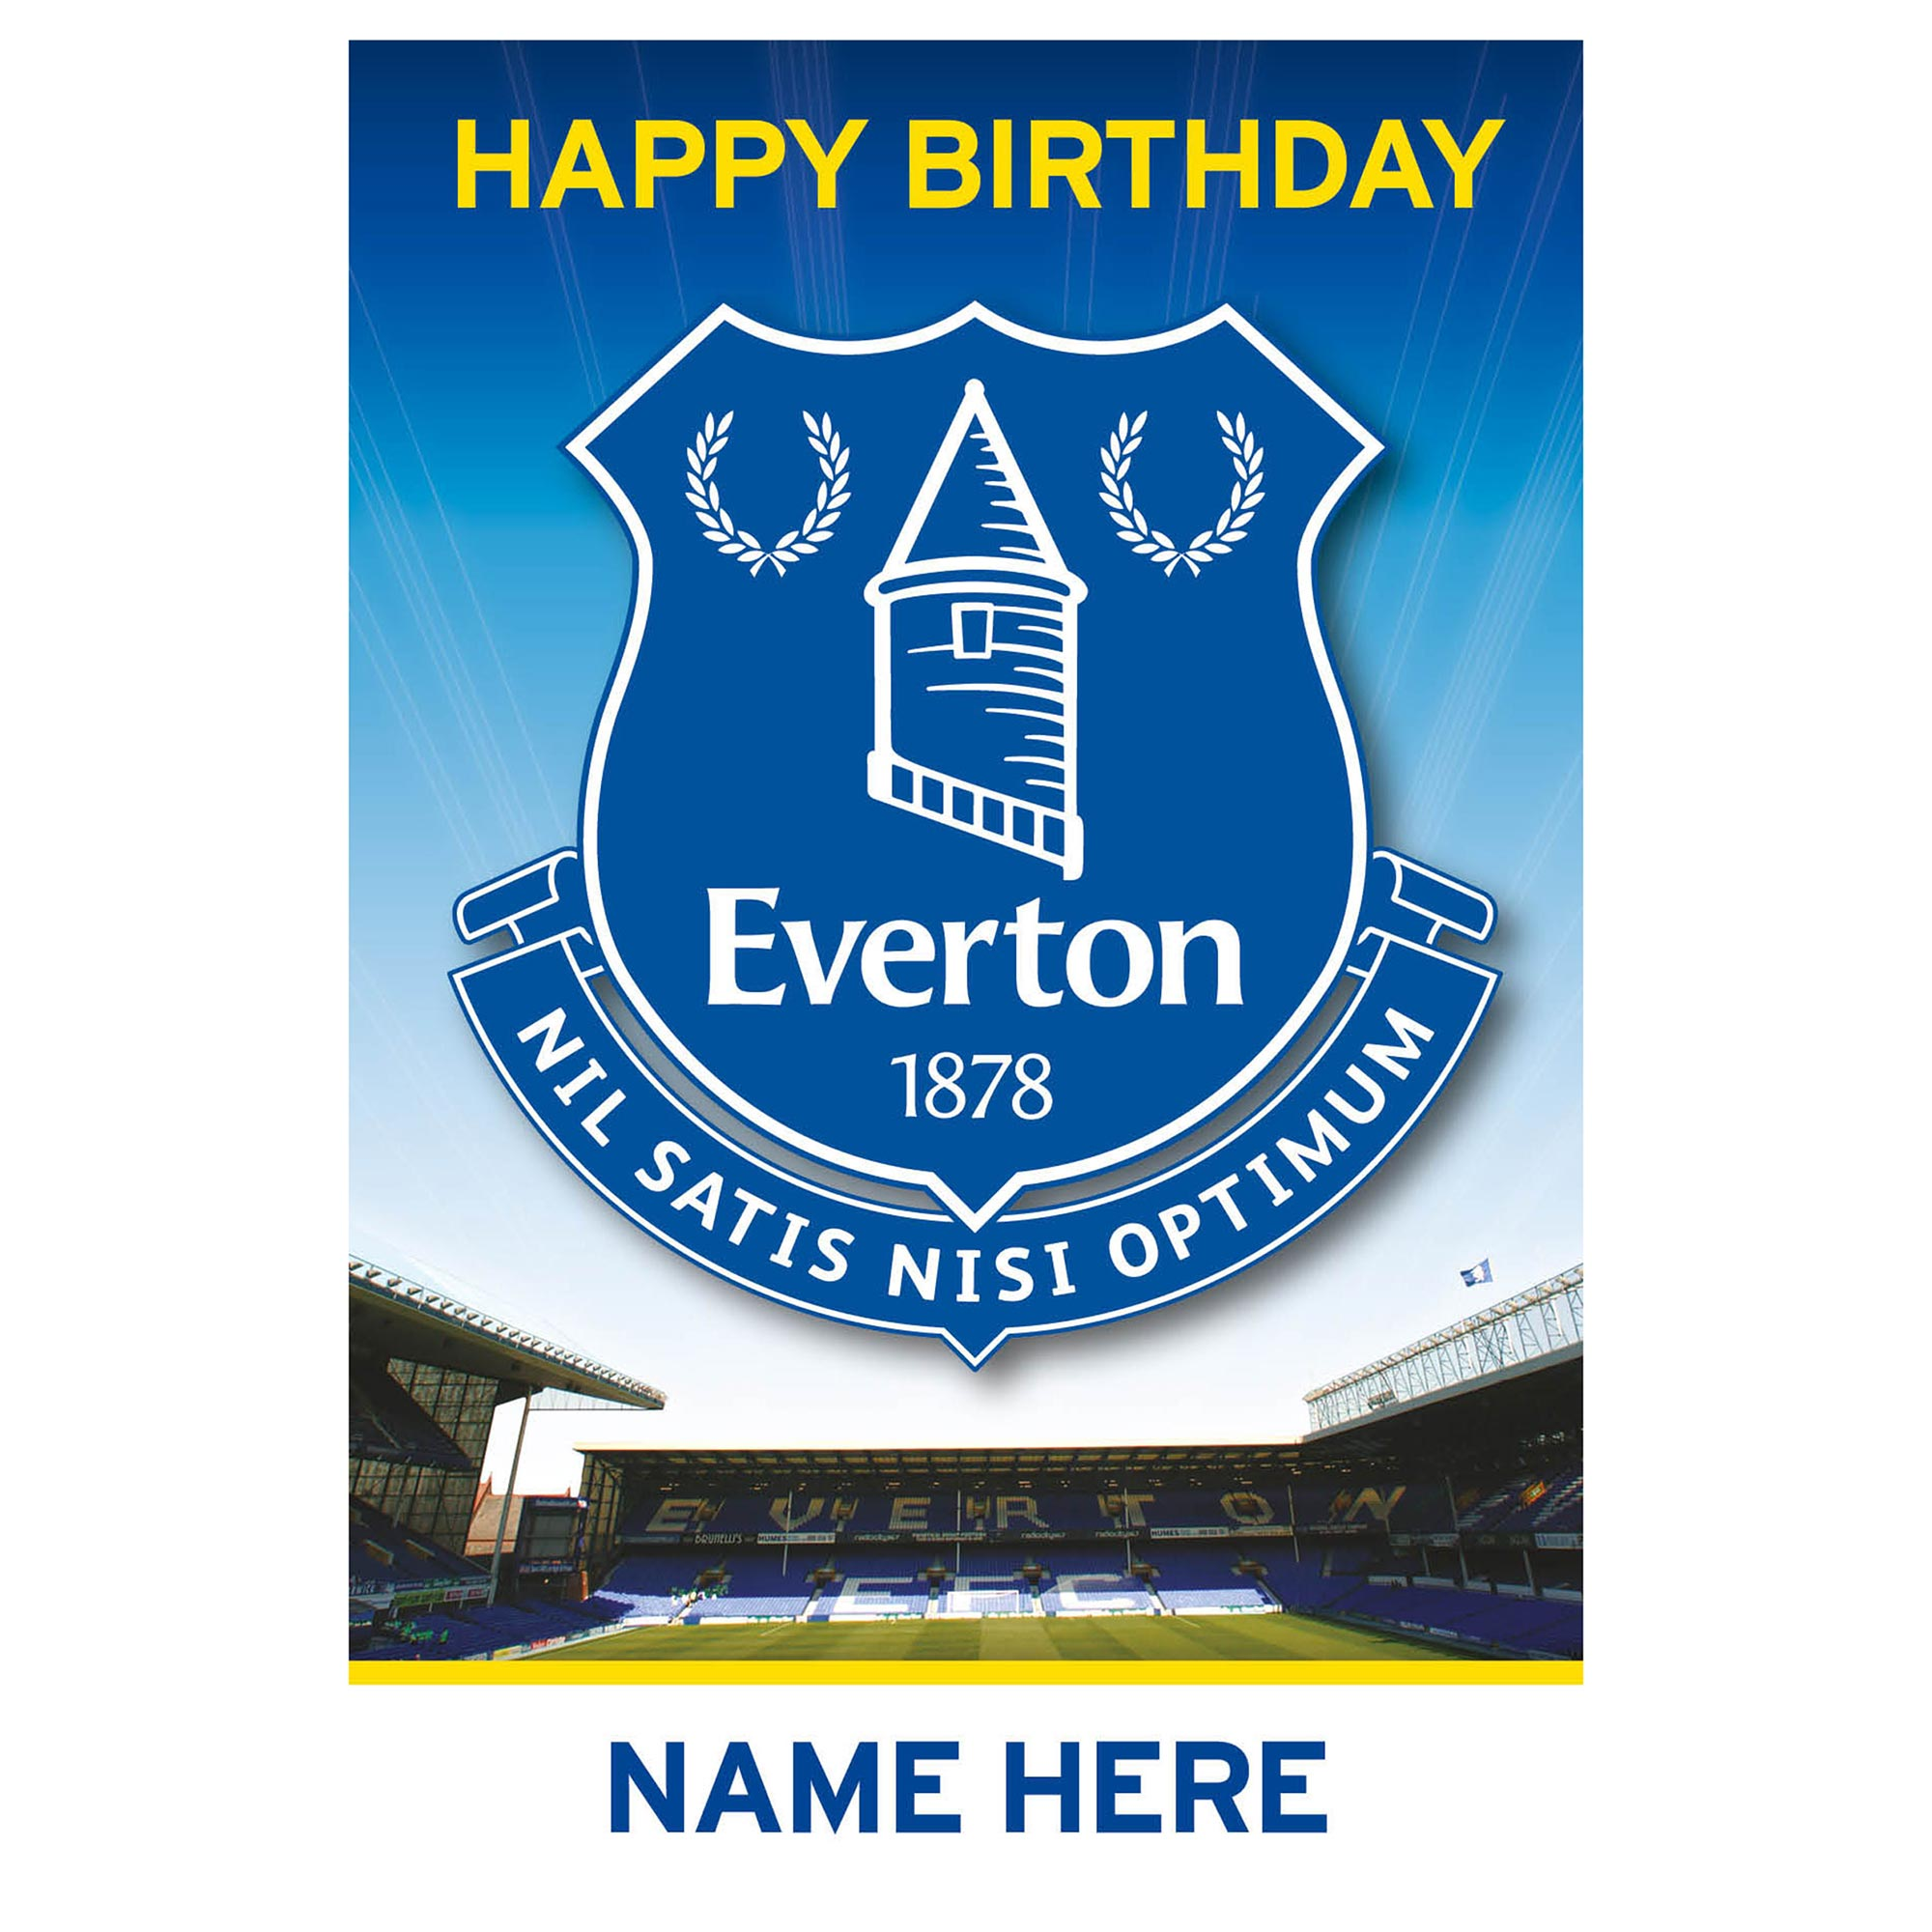 Everton Personalised Happy Birthday Card - Crest